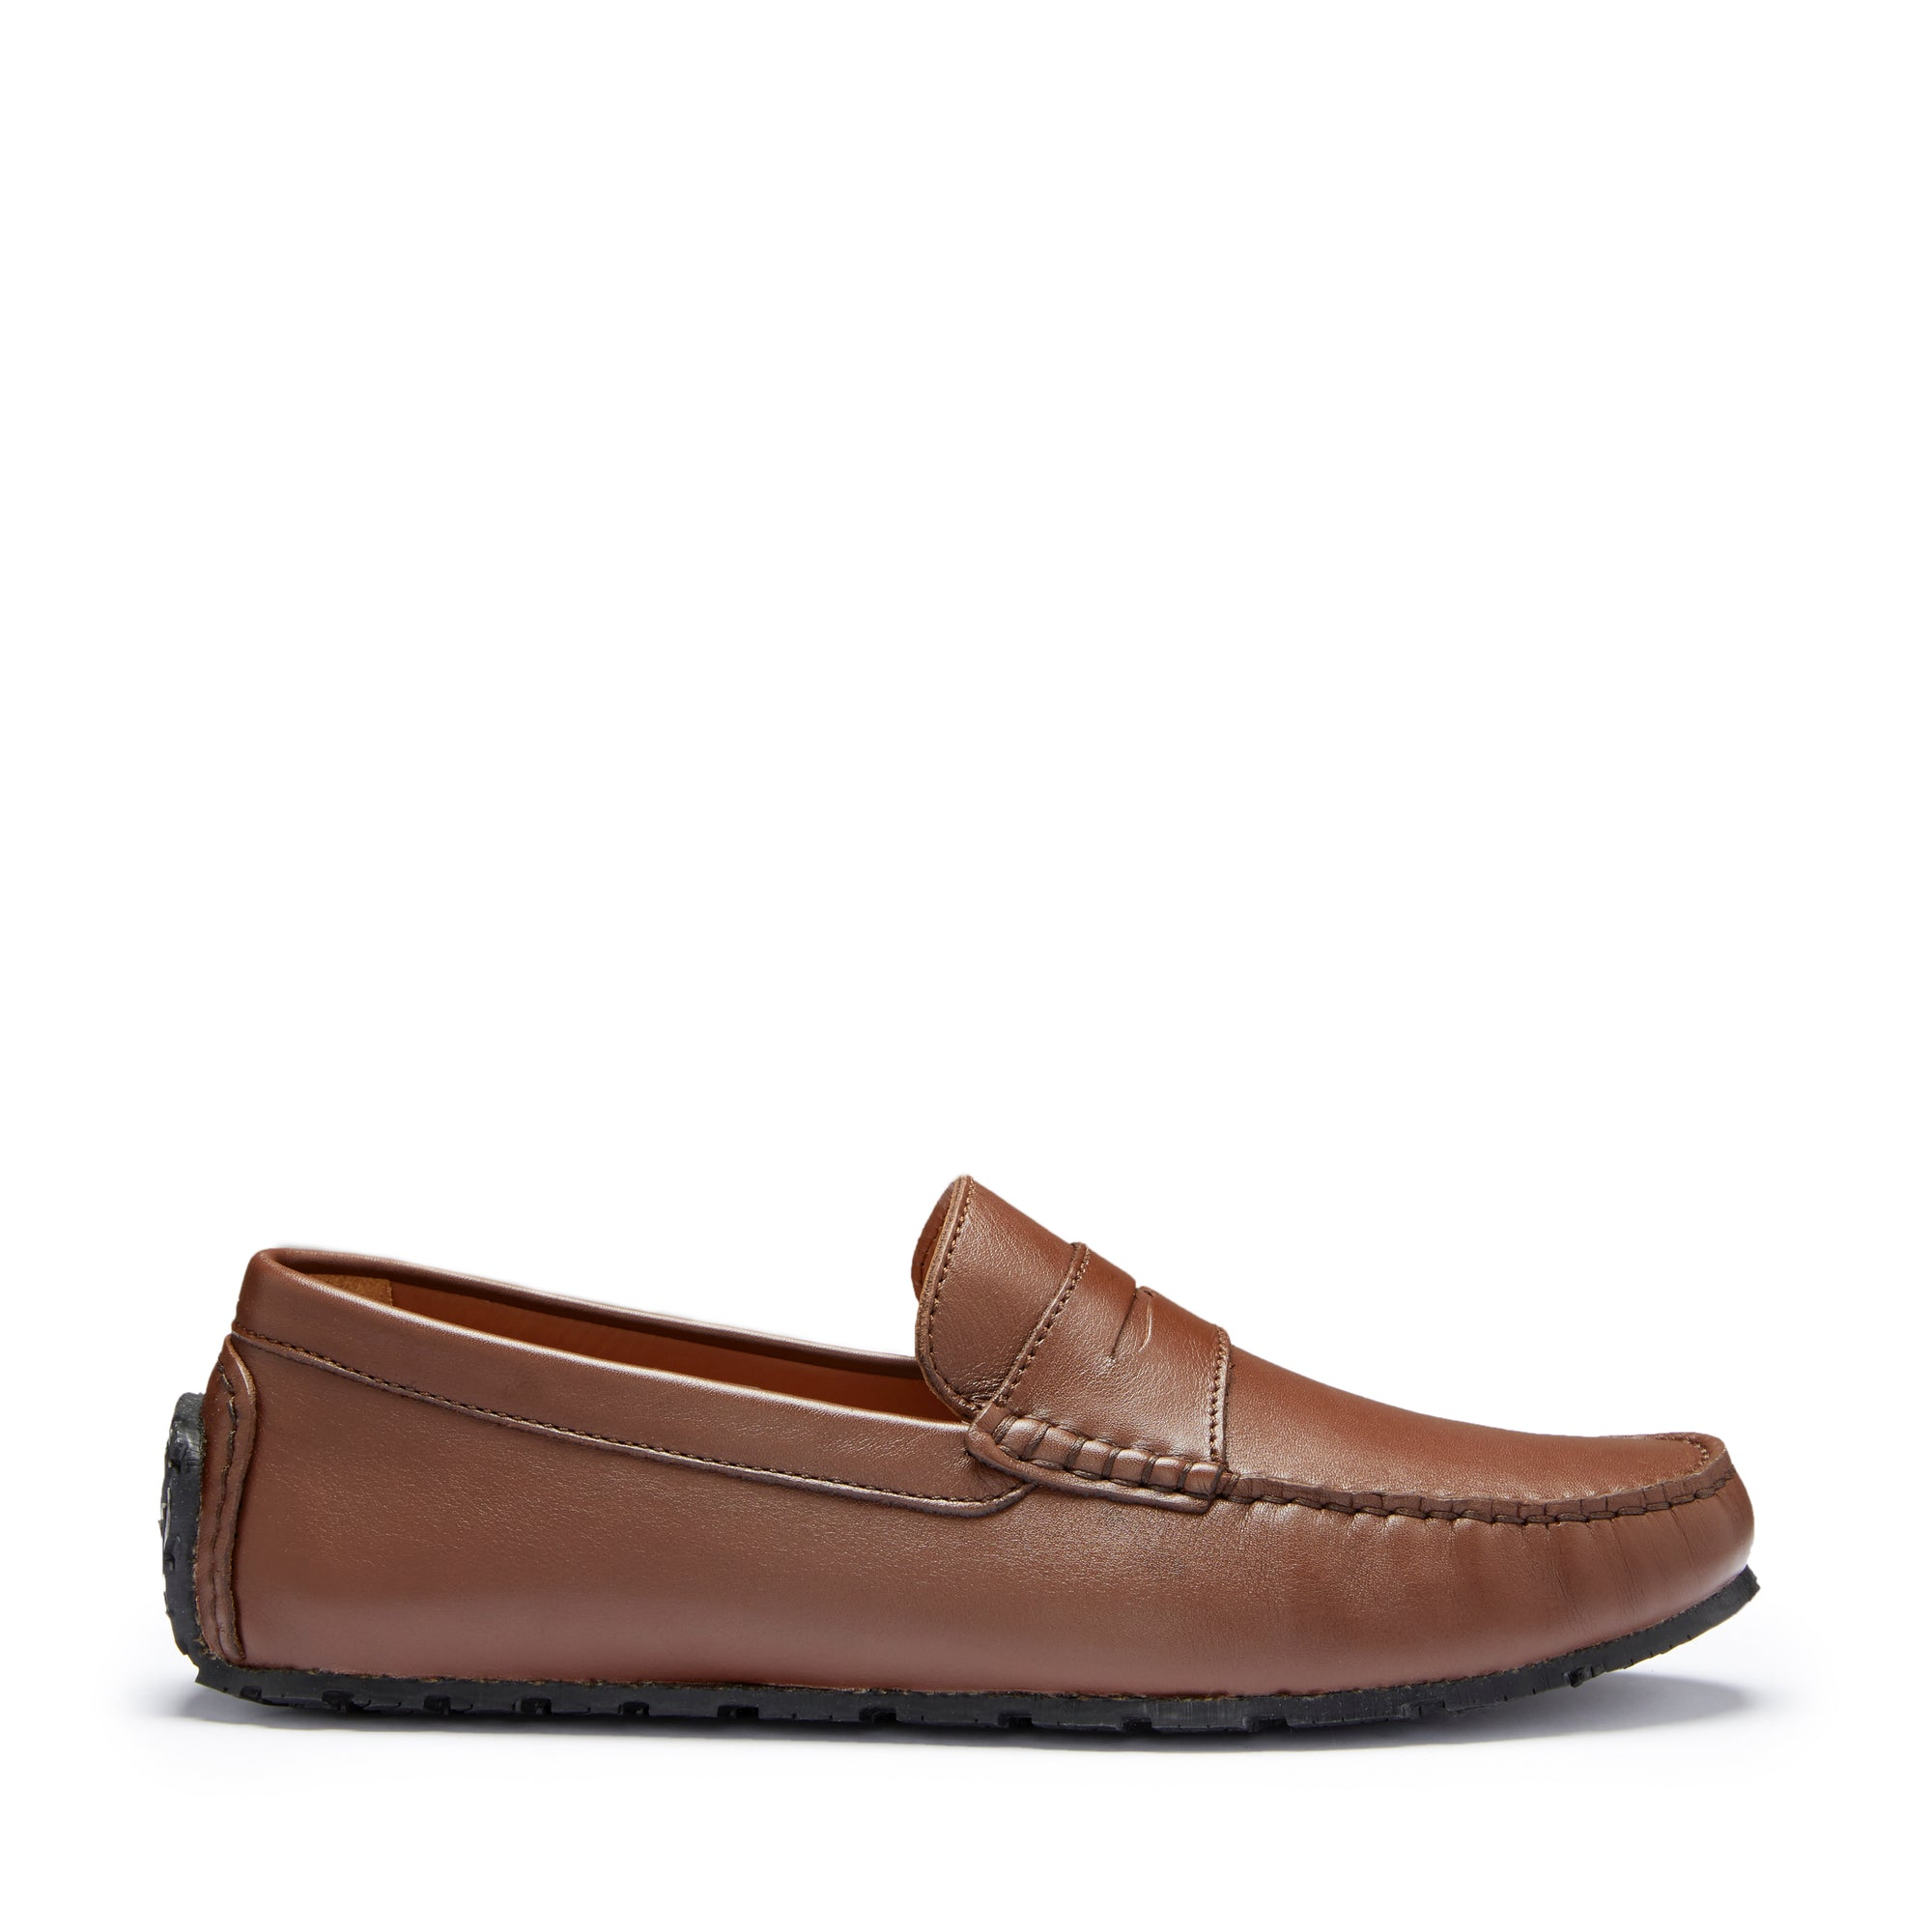 Tyre Sole Penny Driving Loafers, brown leather